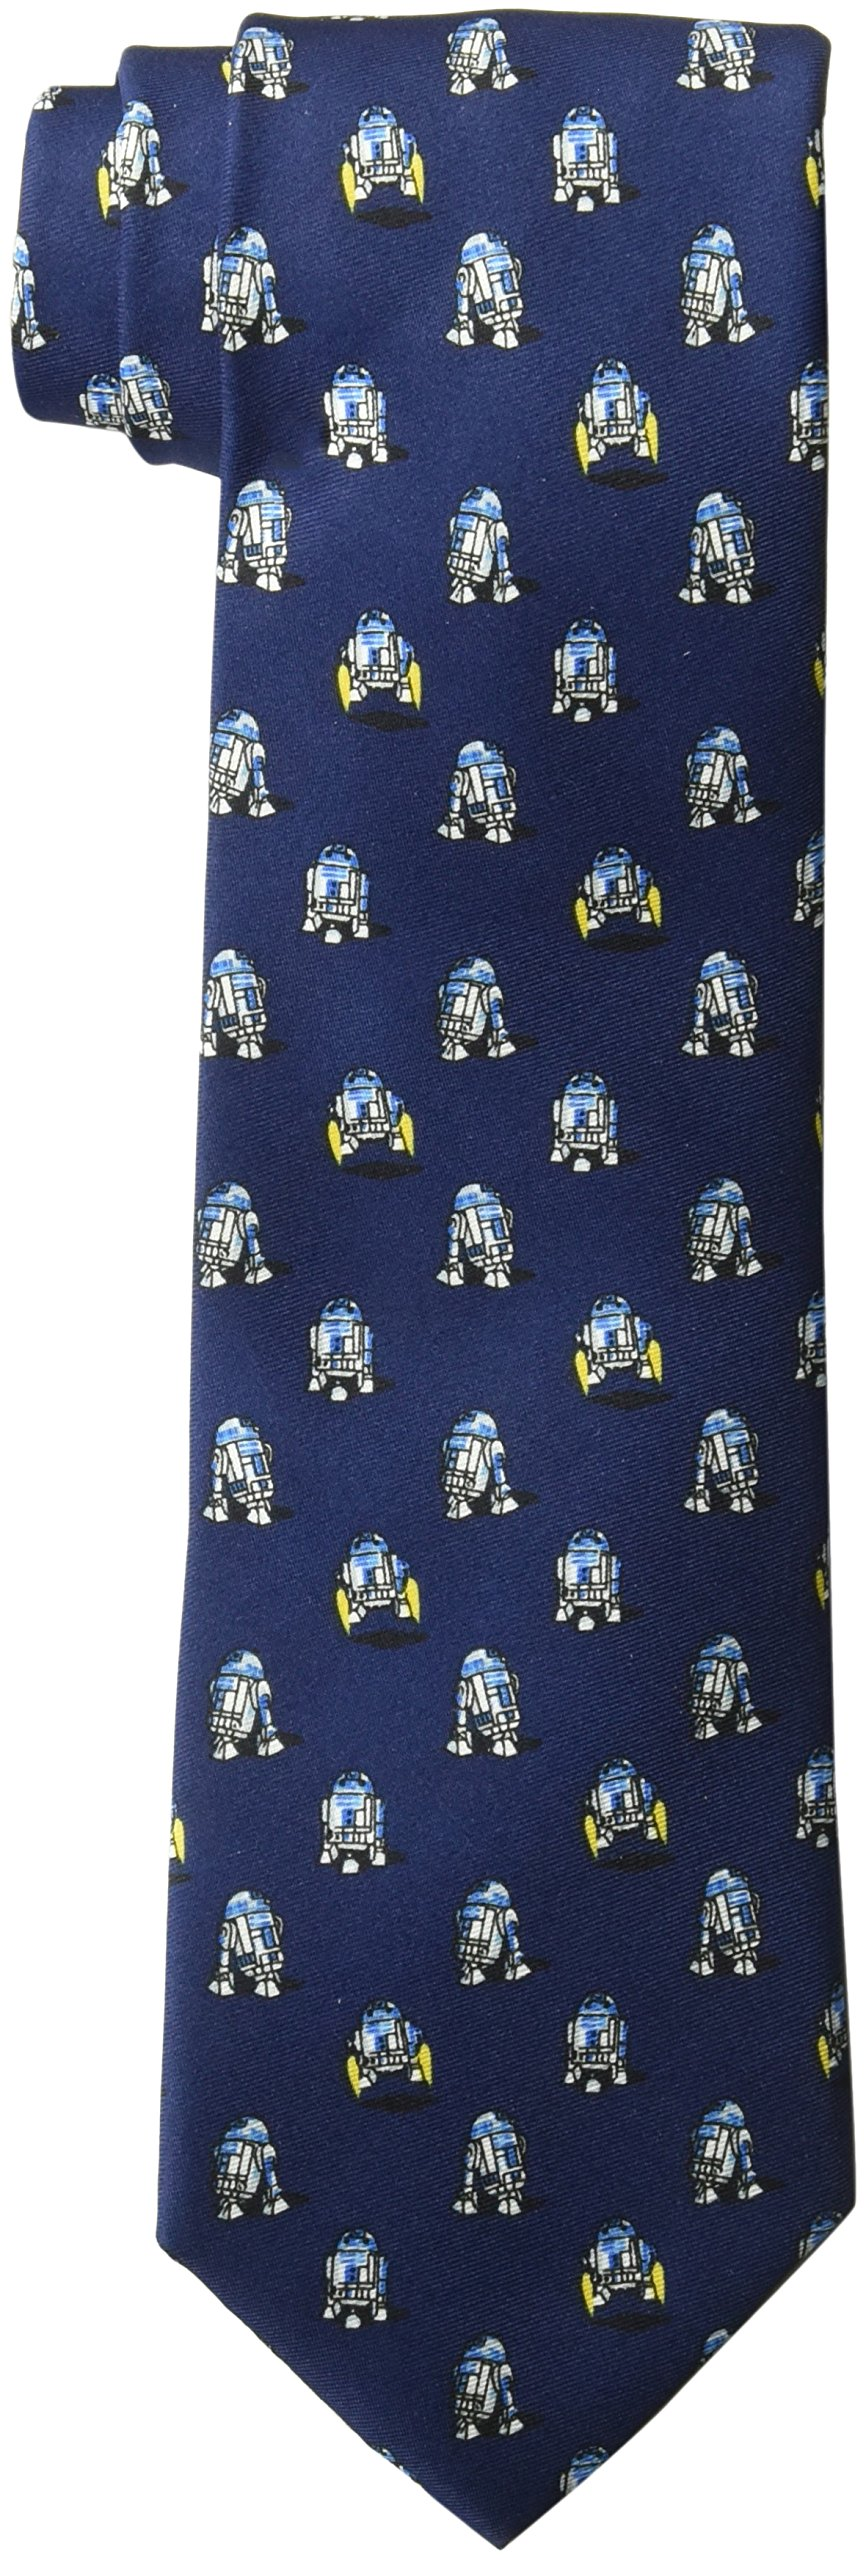 Star Wars Men's R2d2 All Over Tie, Navy, One Size